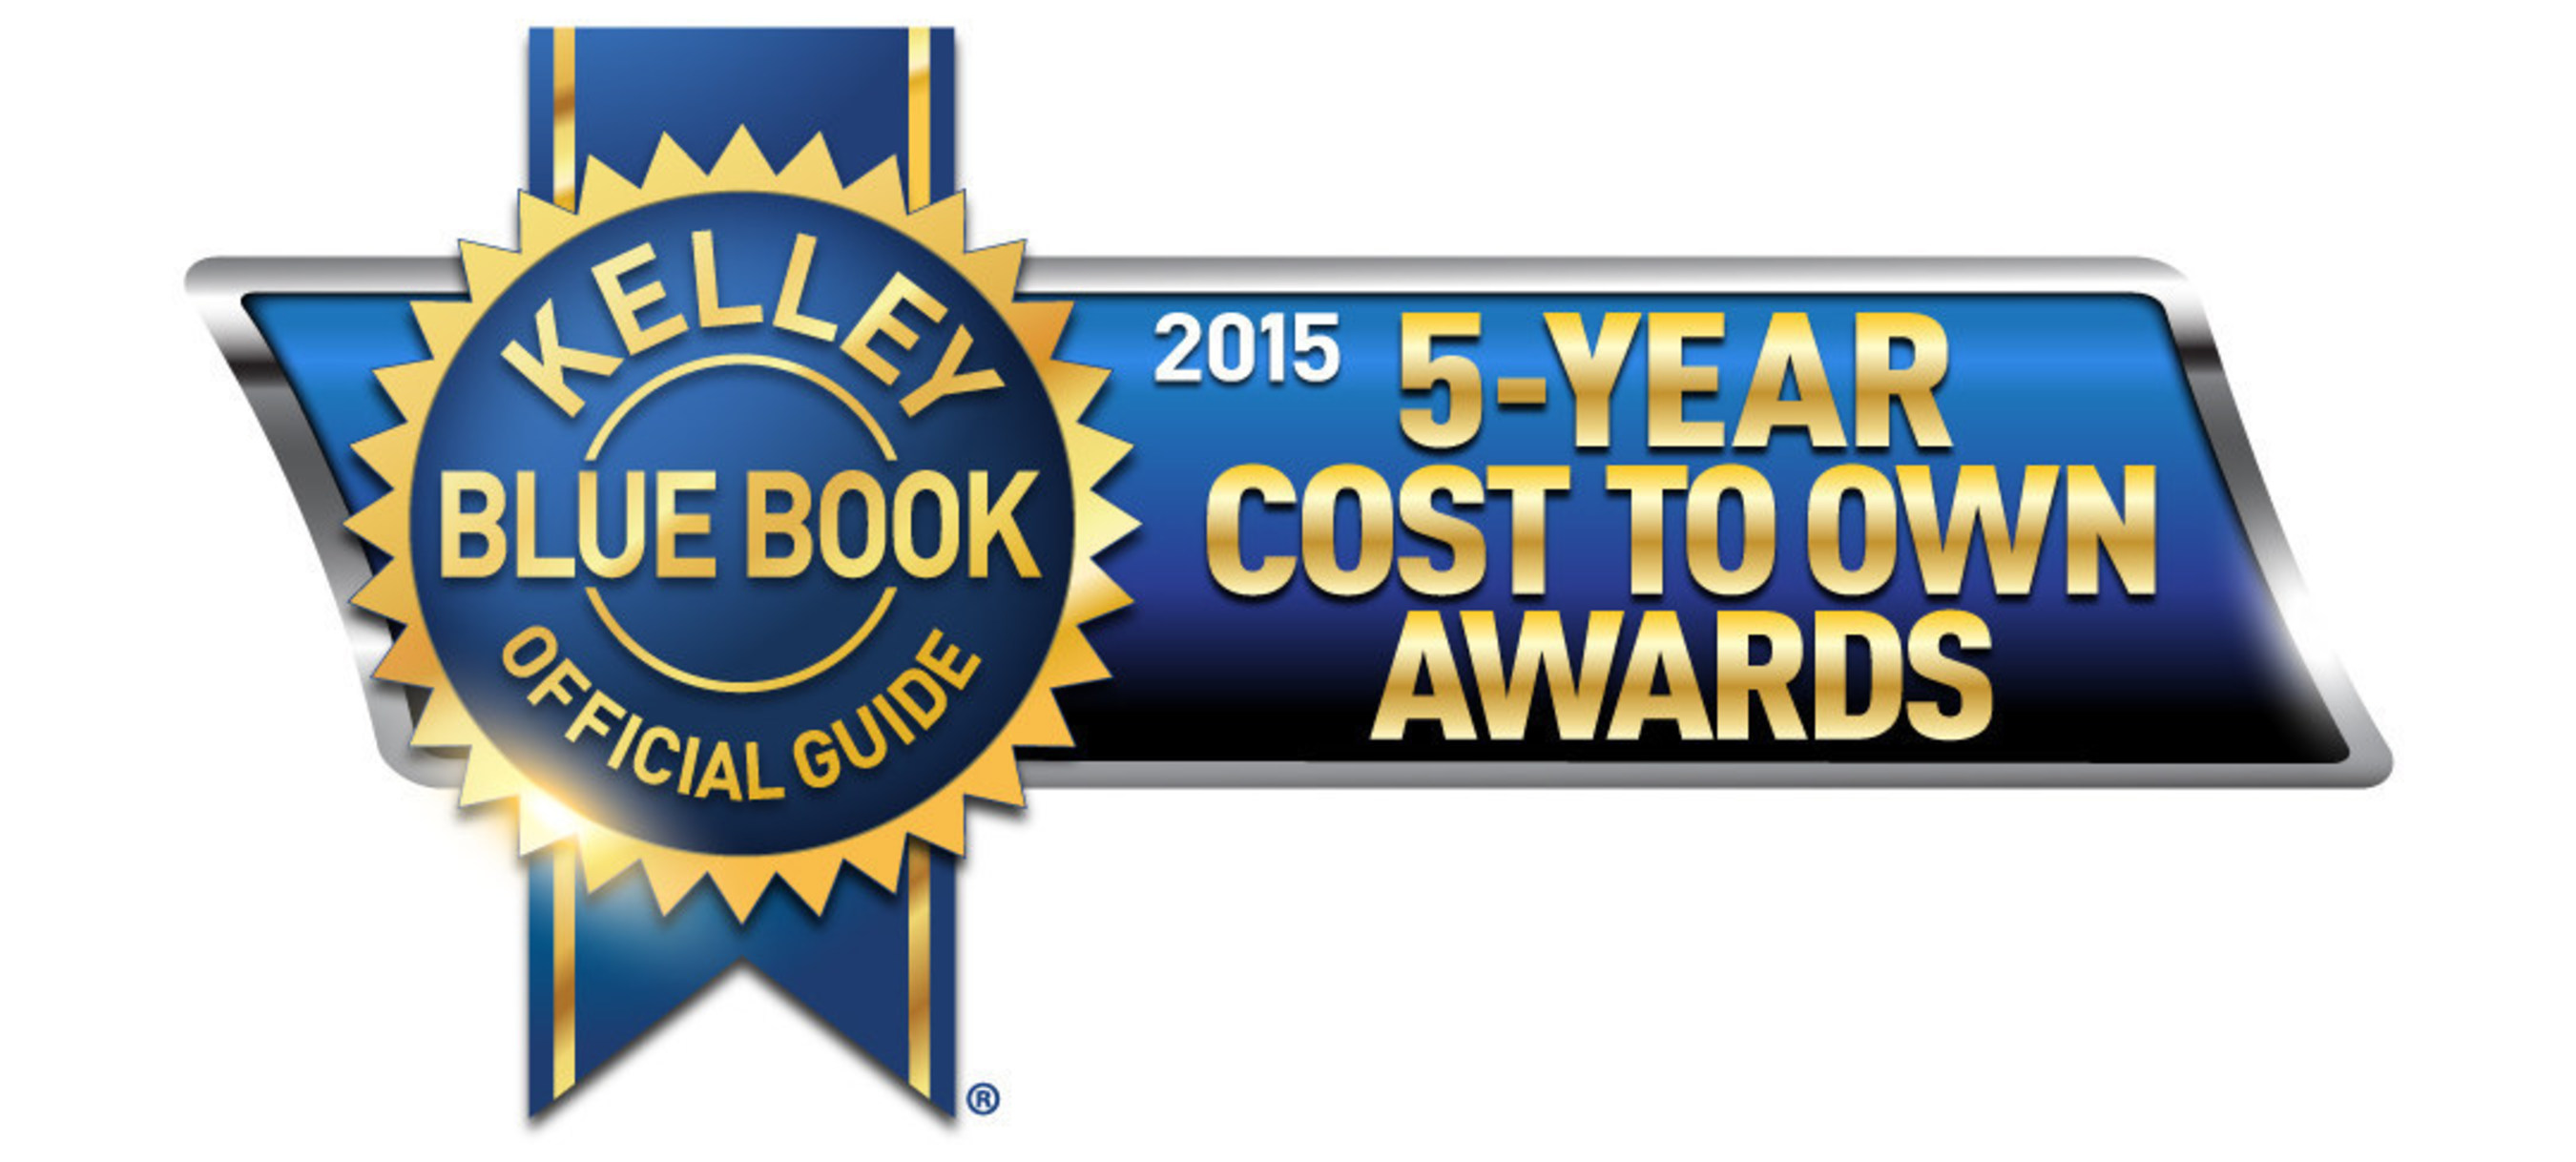 2015 5 Year Cost To Own Award Winners Announced By Kelley Blue Book